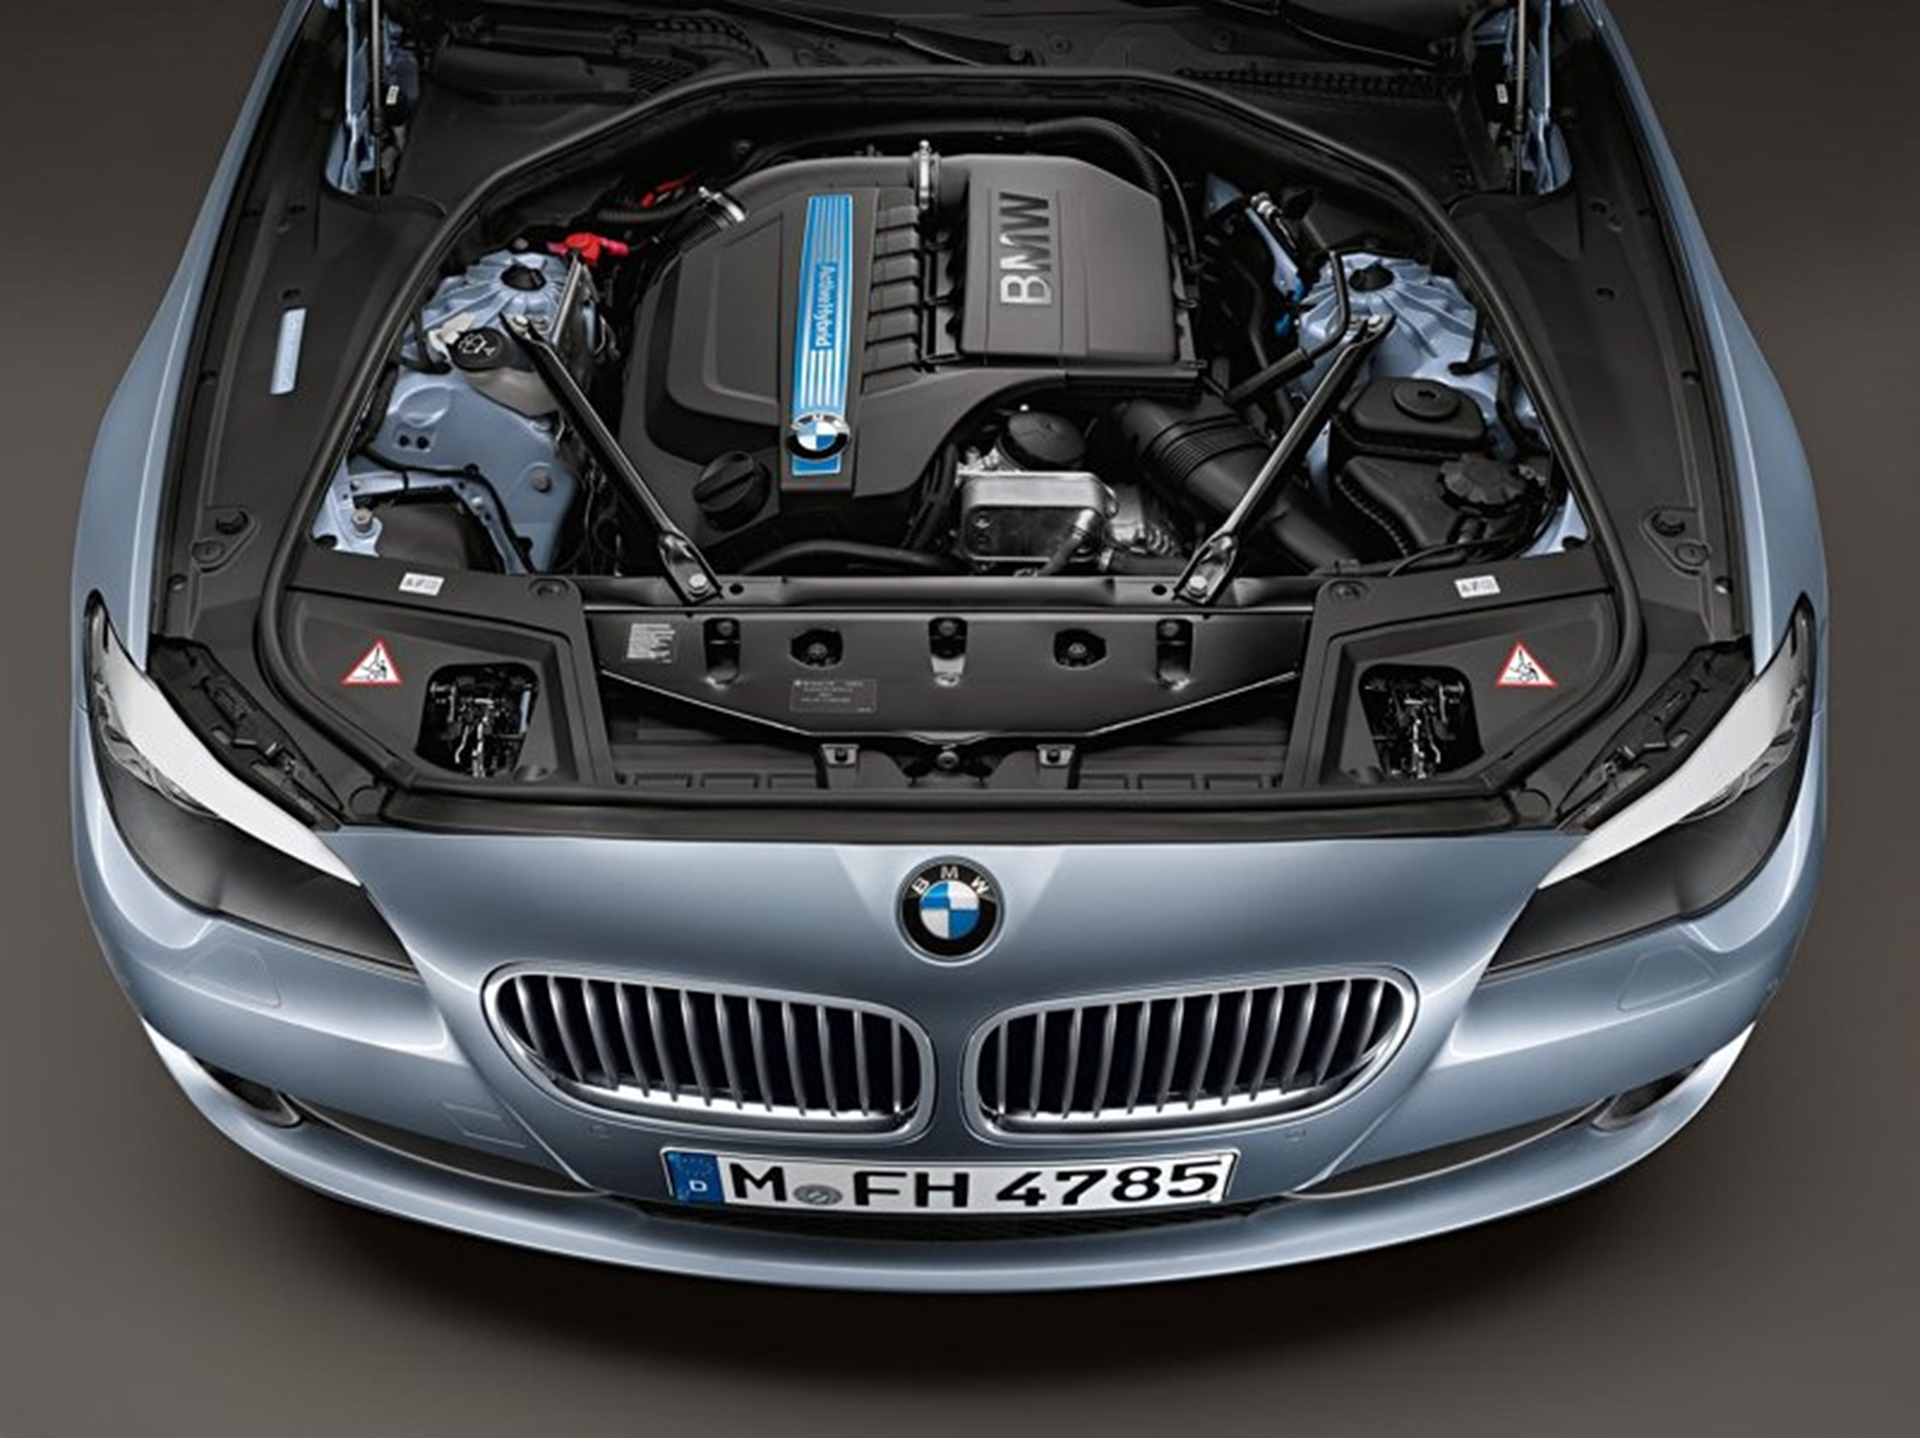 BMW Hybrid Engine